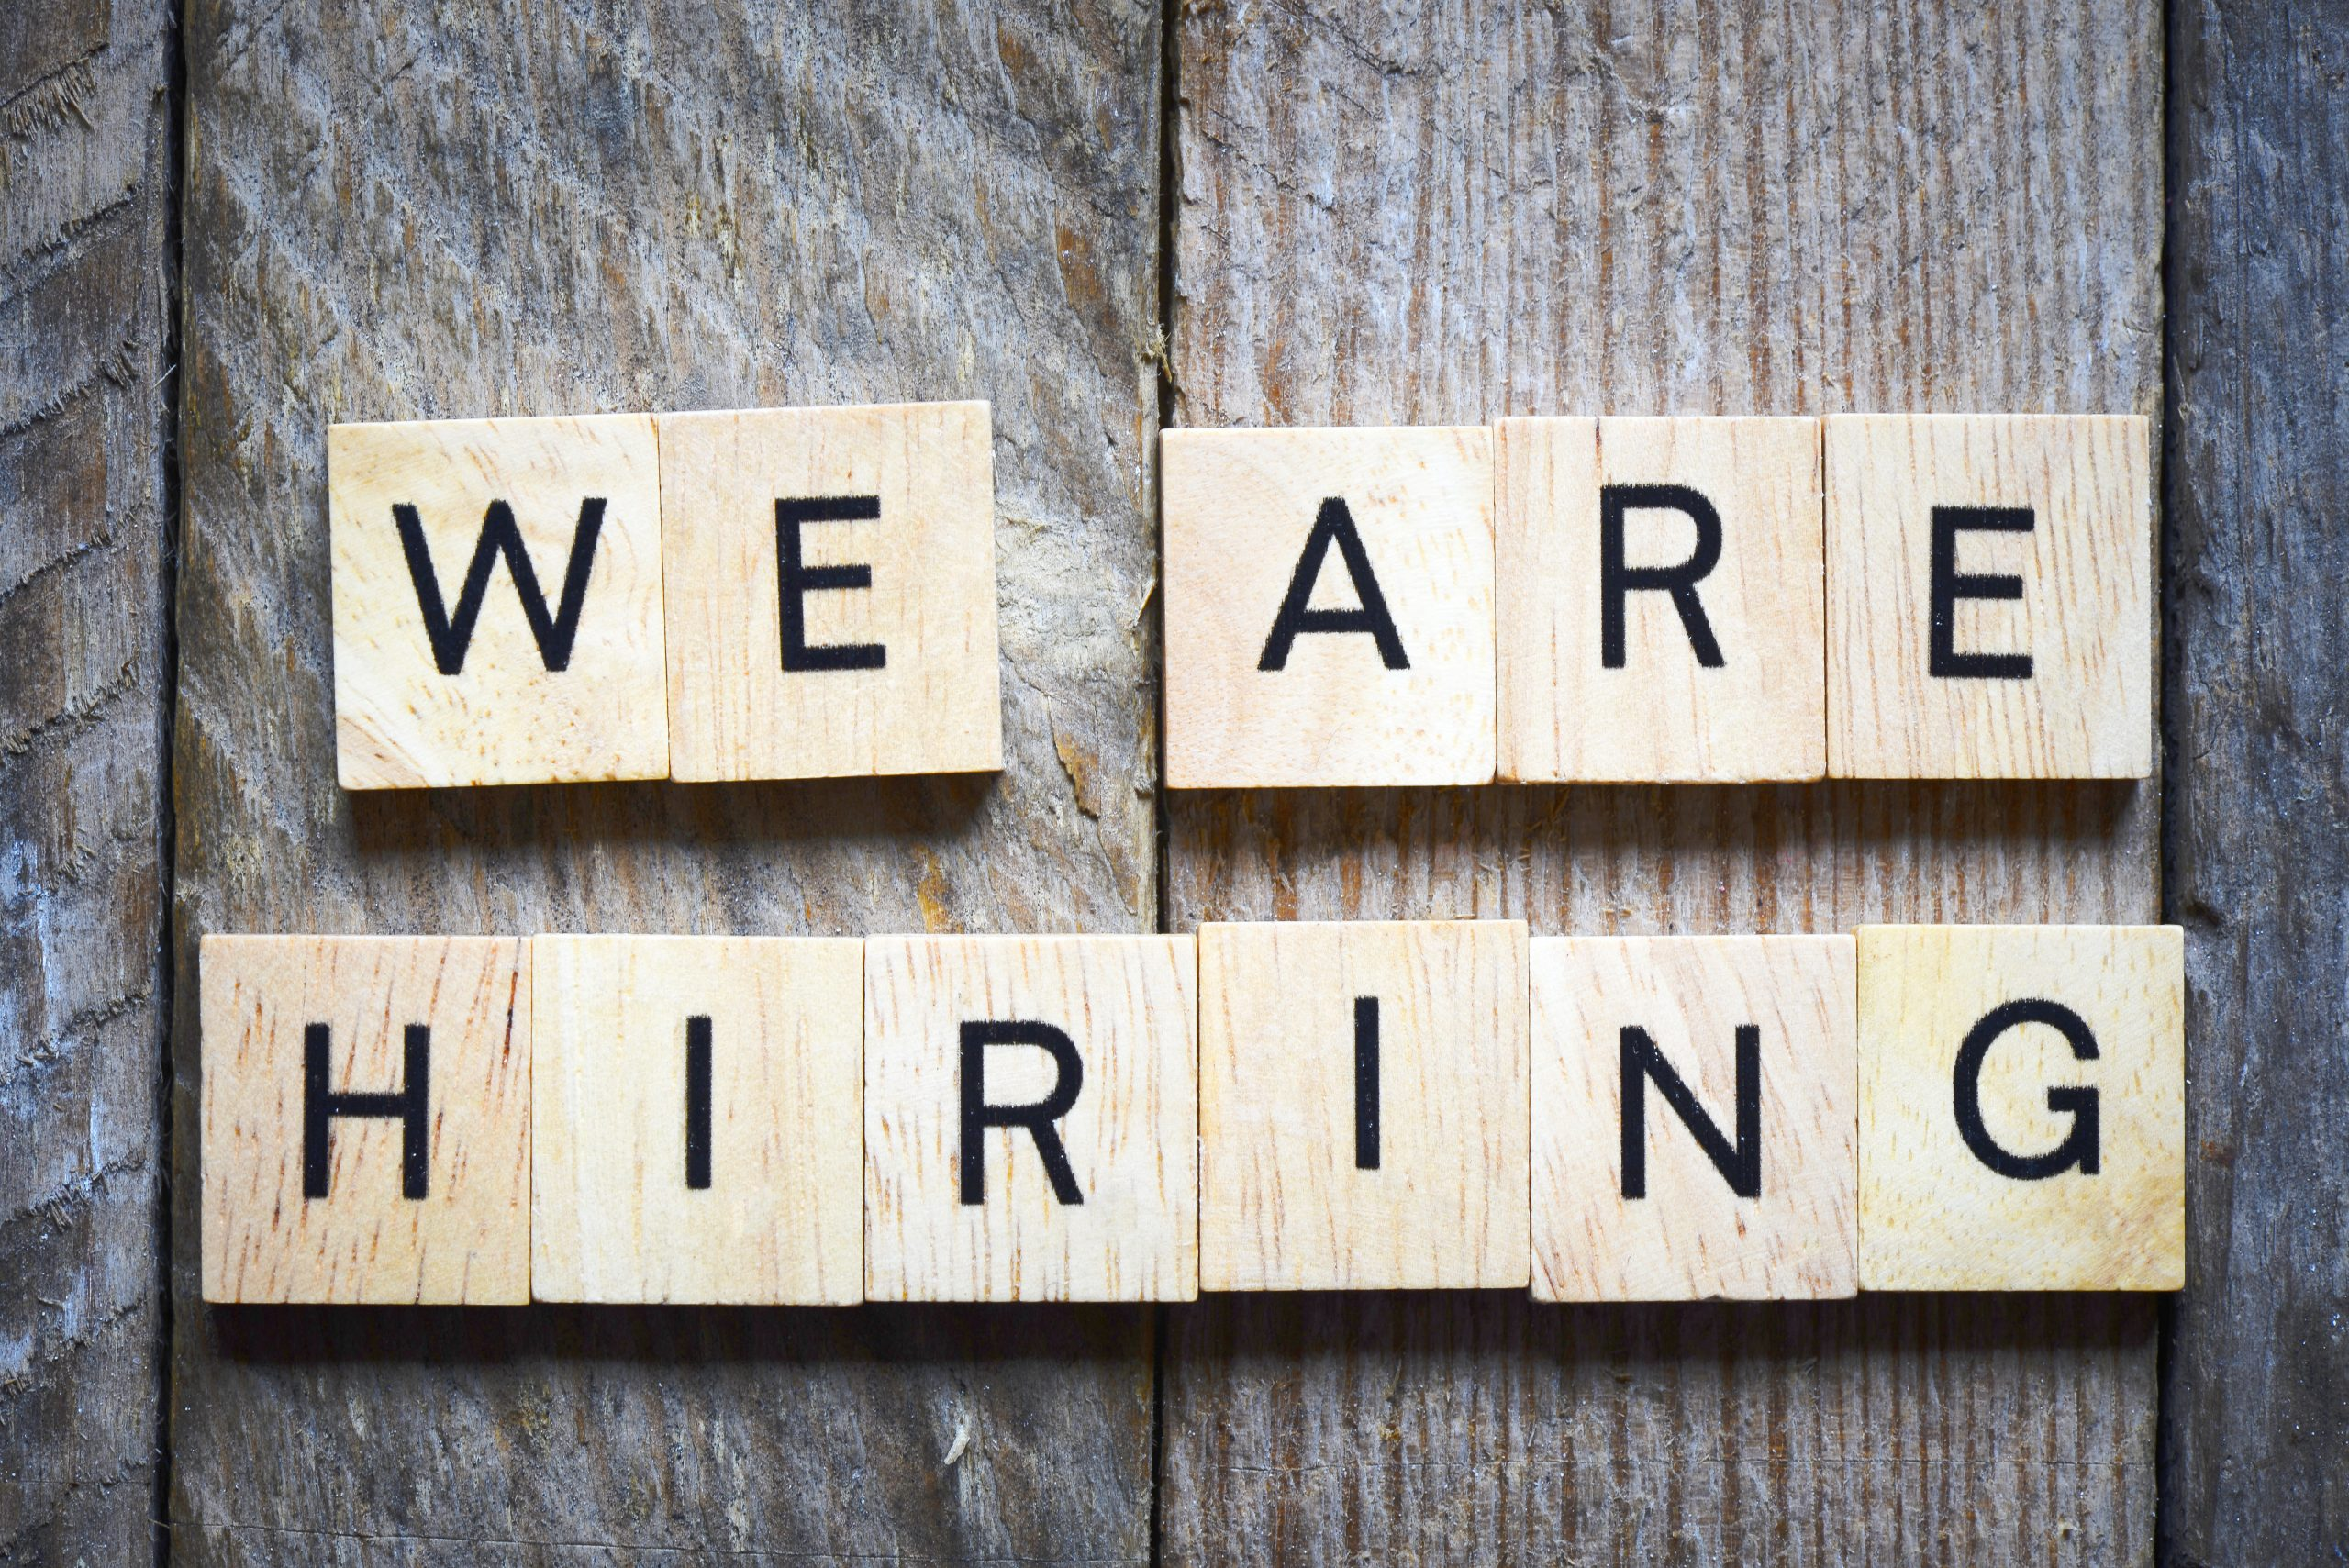 Wooden blocks spelling out: We are hiring